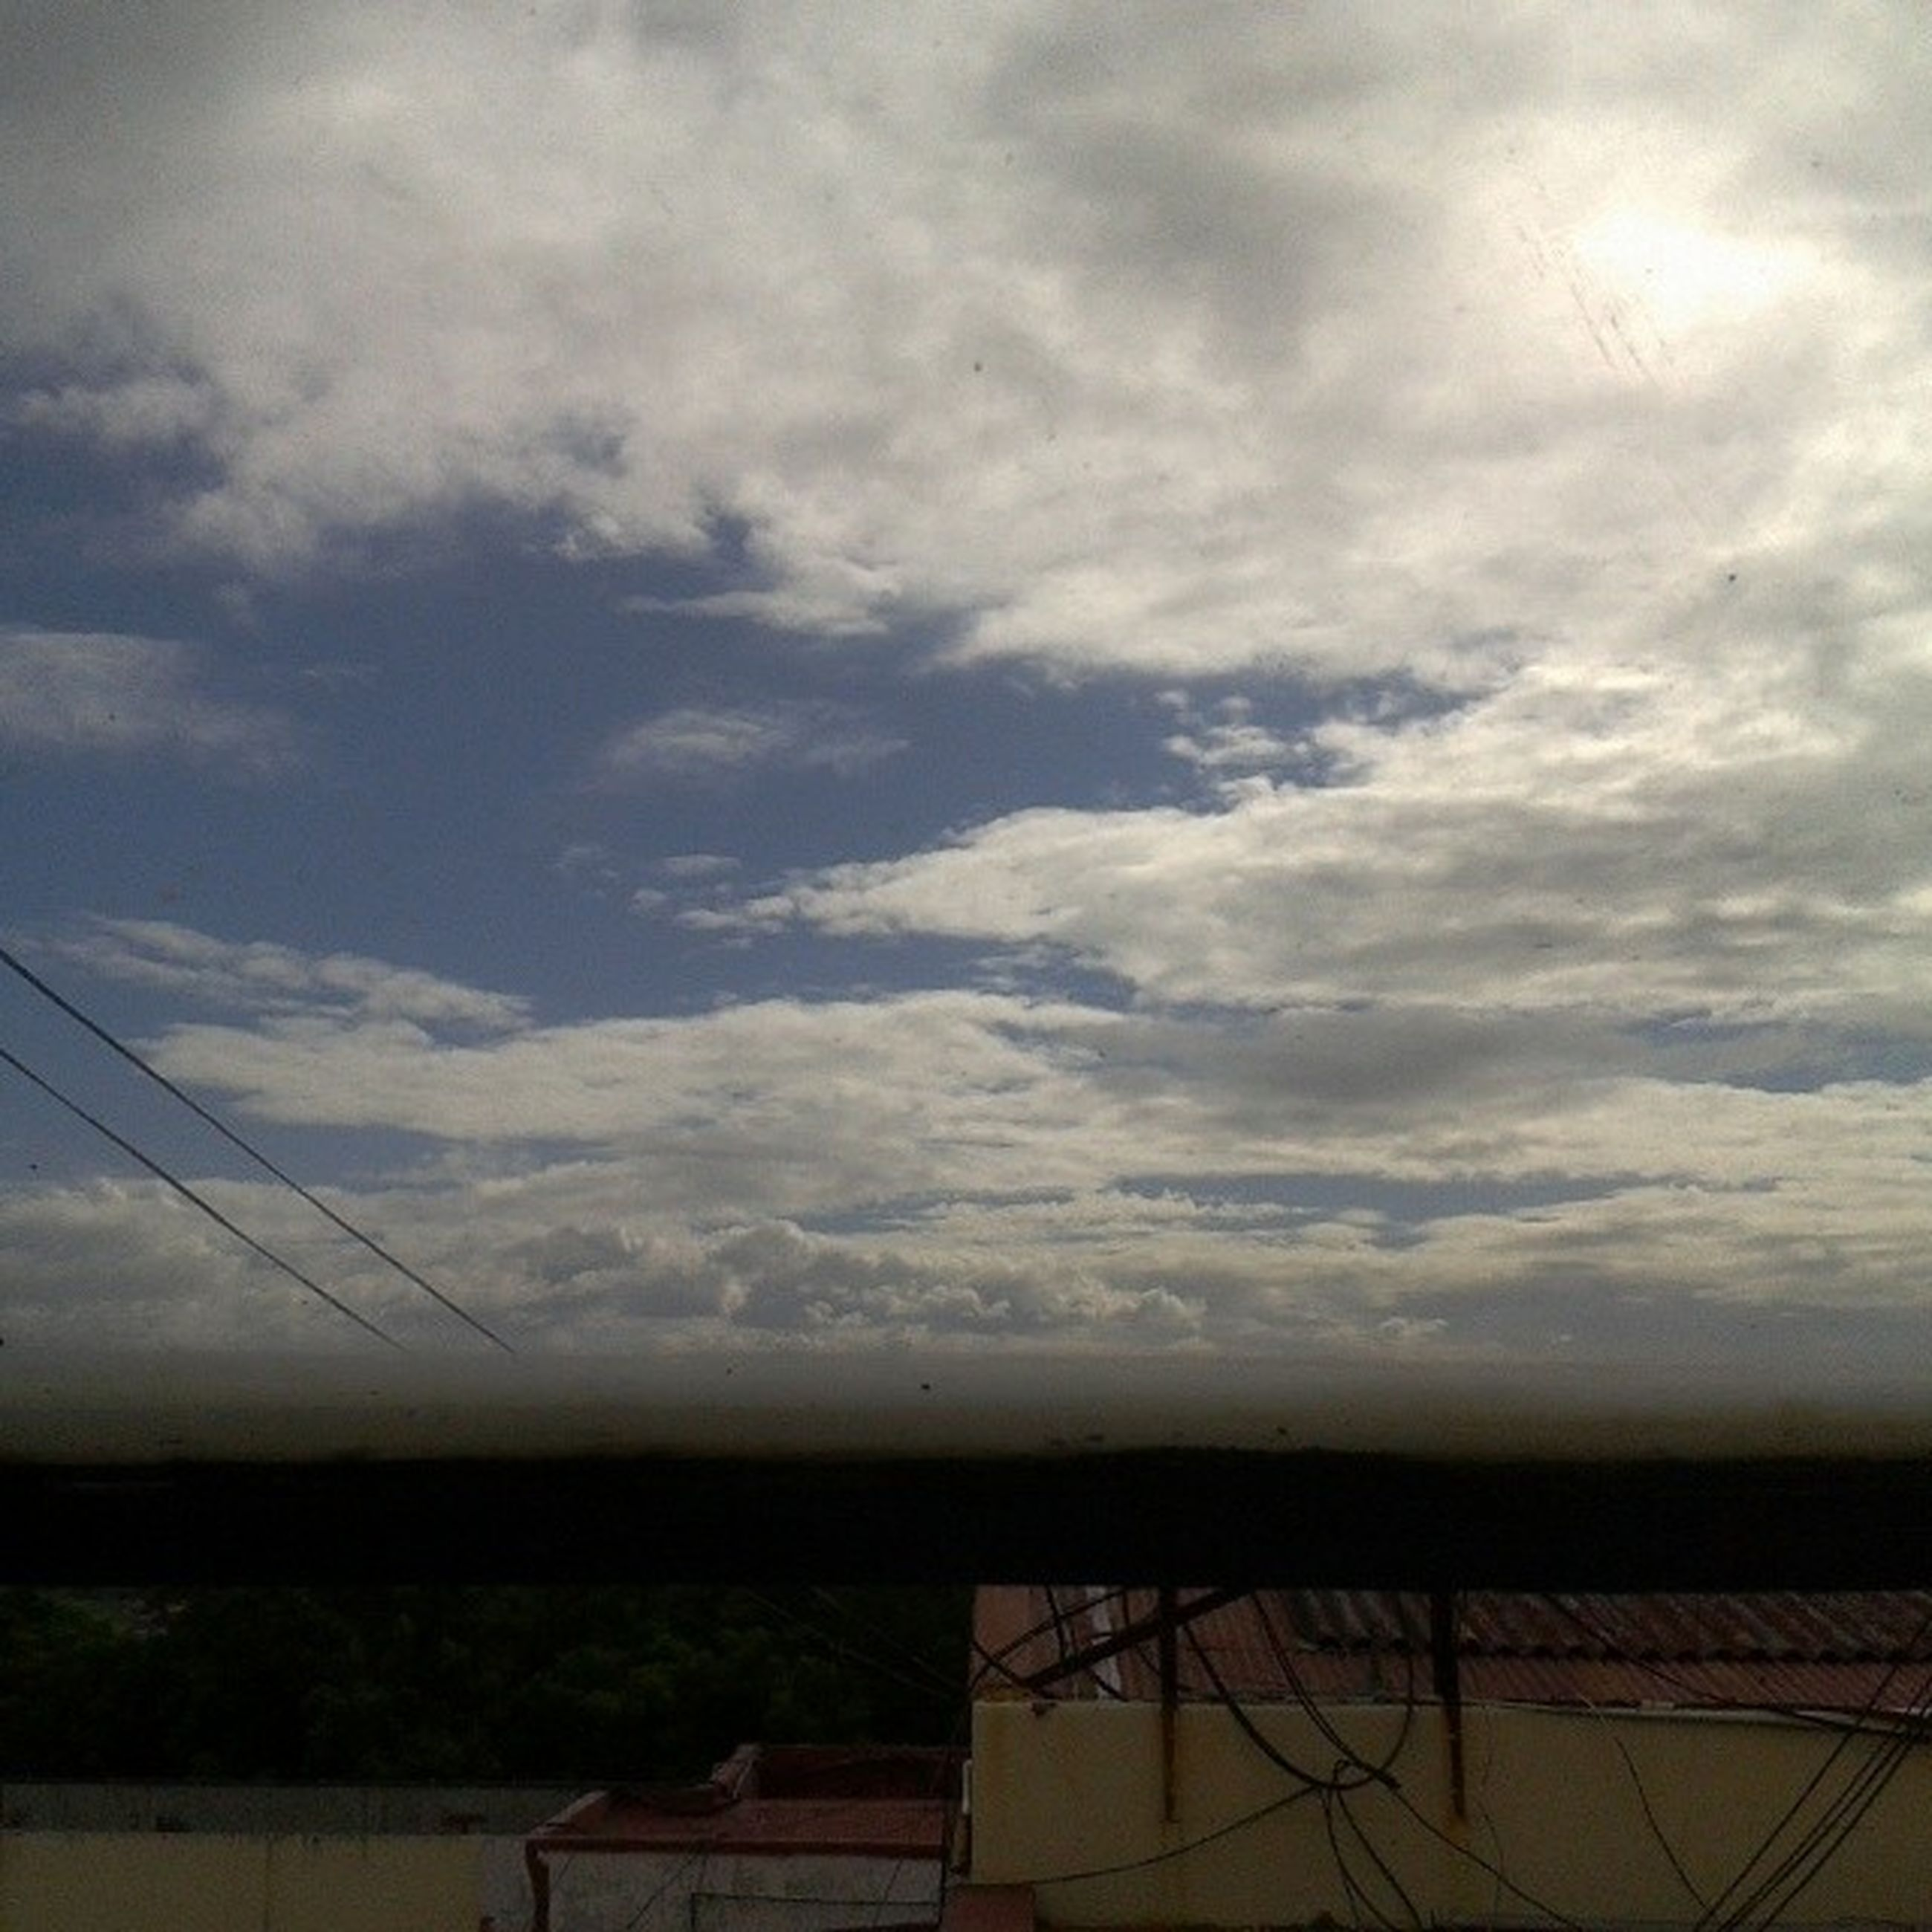 sky, cloud - sky, cloudy, power line, tranquility, electricity pylon, tranquil scene, cloud, landscape, scenics, nature, electricity, beauty in nature, connection, field, cable, power supply, weather, overcast, fuel and power generation